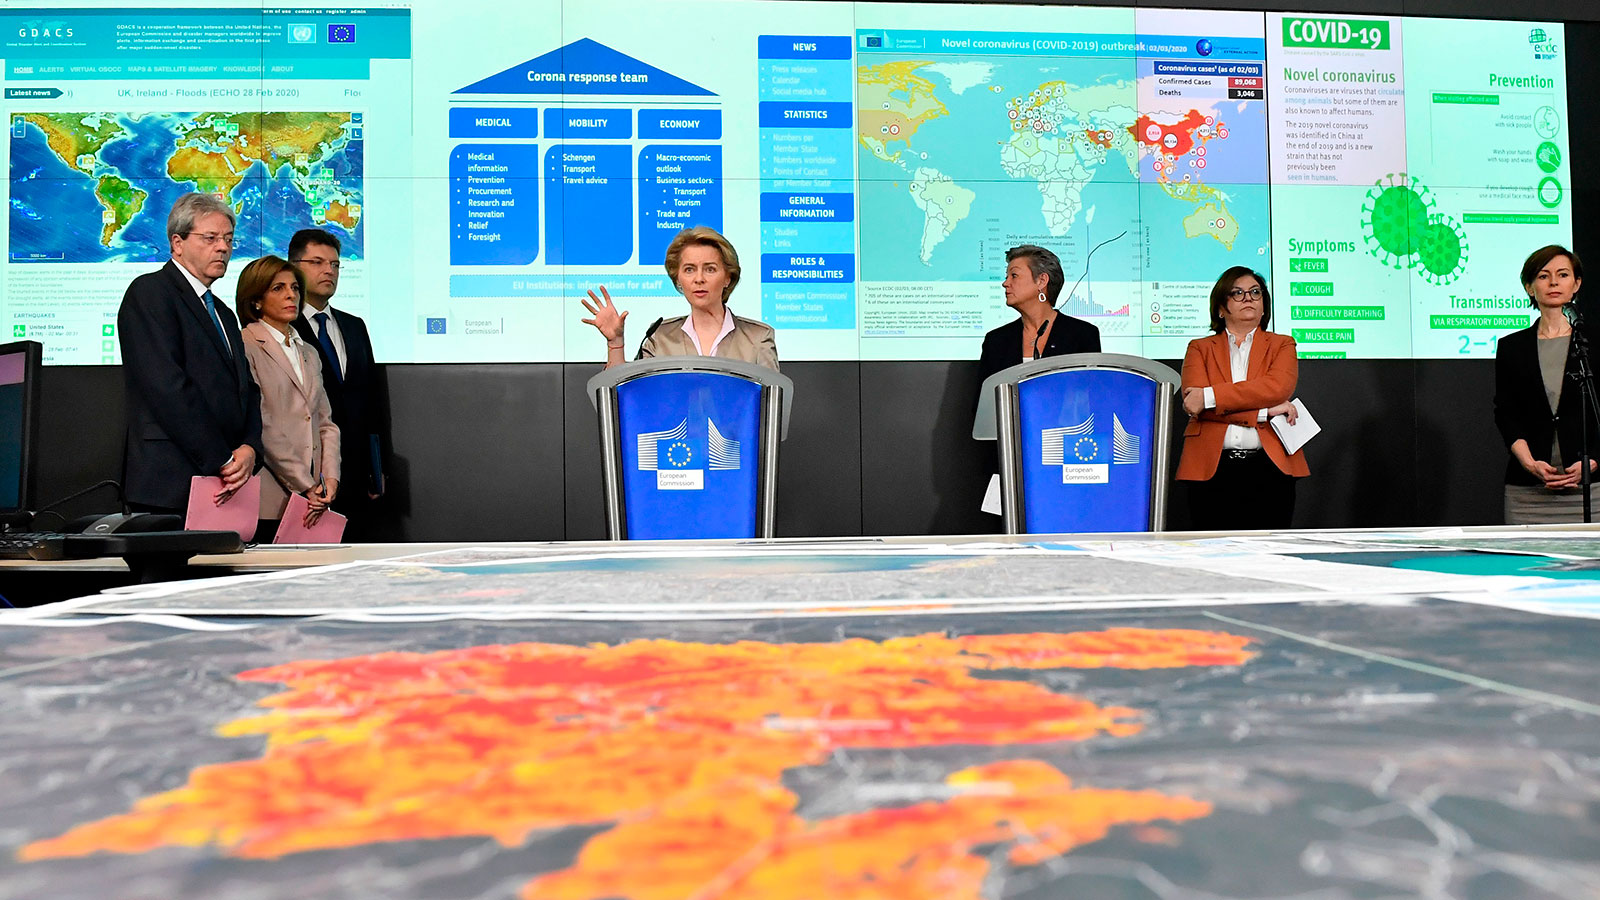 President of the European Commission President Ursula von der Leyen speaks during a press conference at the European Centre for Disease Prevention and Control in Brussels on March 2.